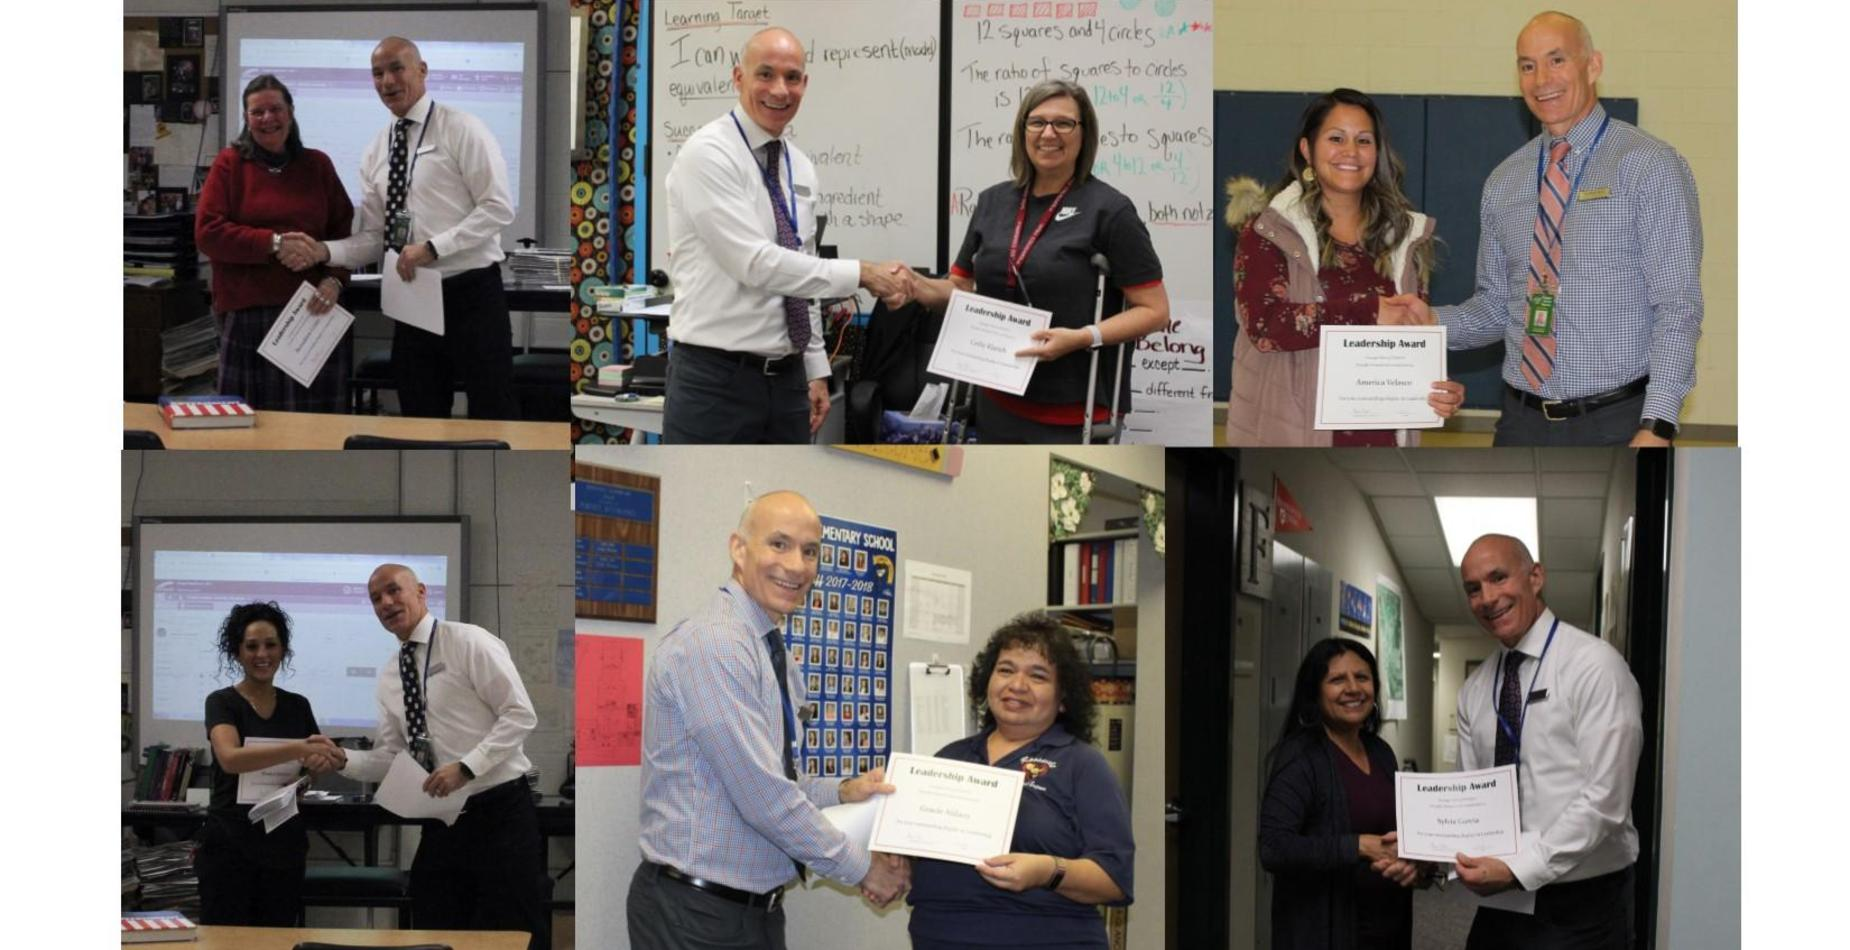 Pictures of Staff being honored for their Leadership Skills